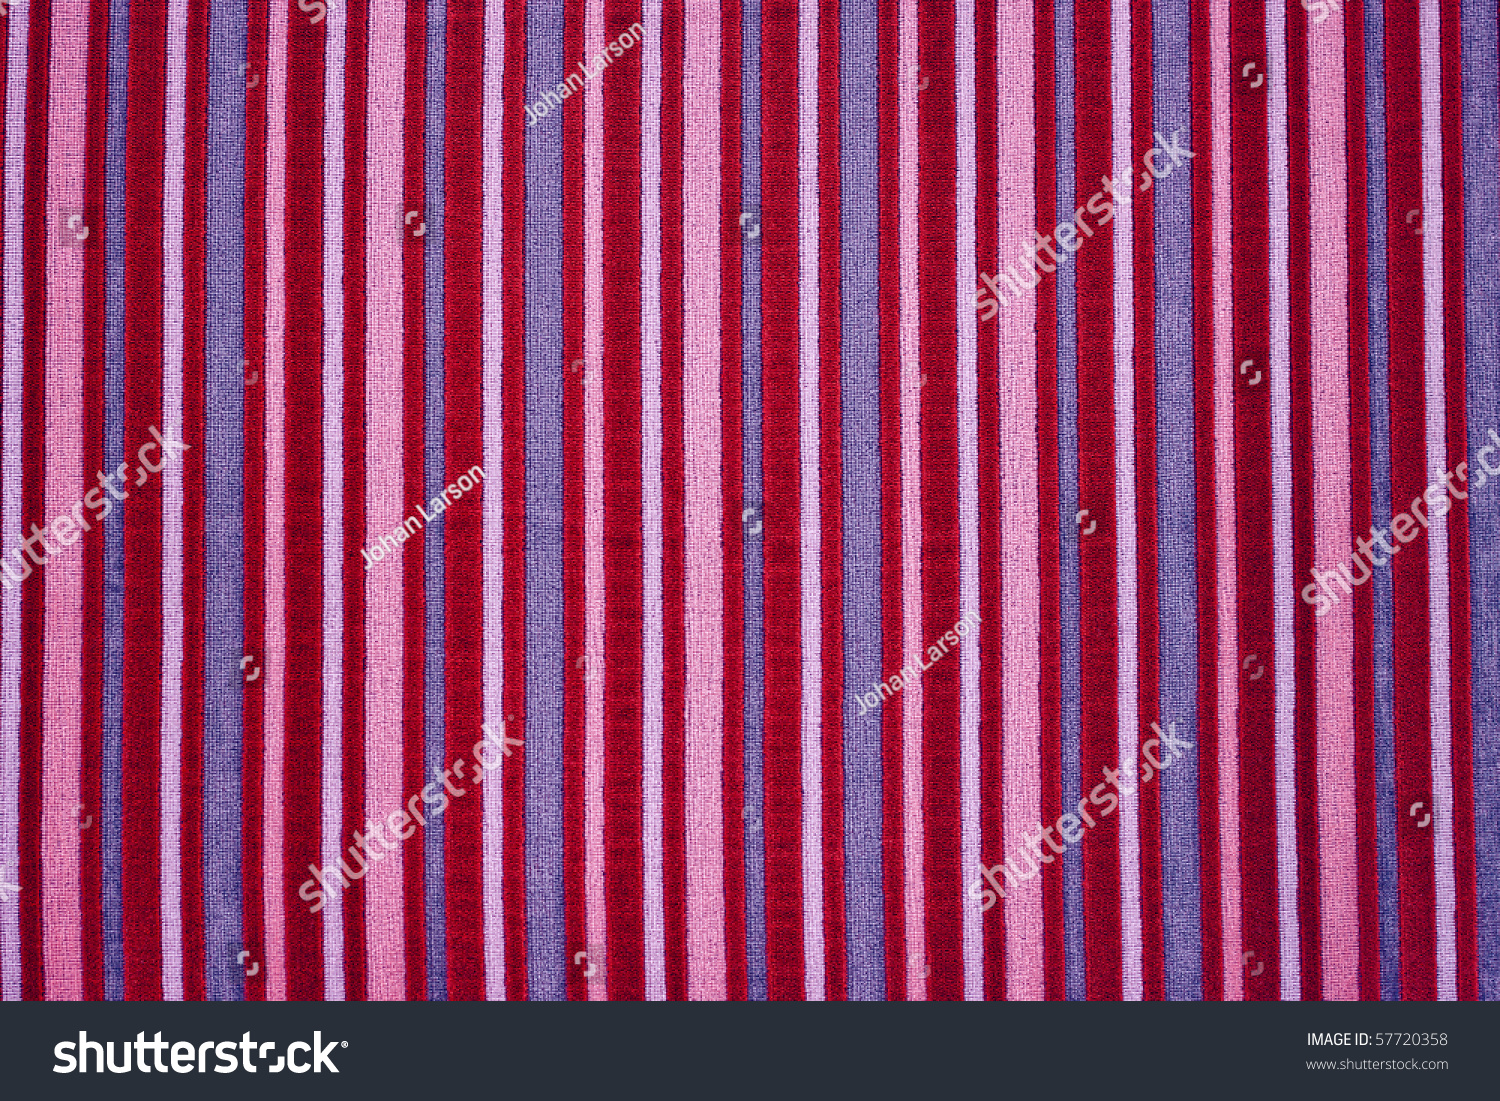 A Funky Red Striped Background Or Texture Stock Photo ...